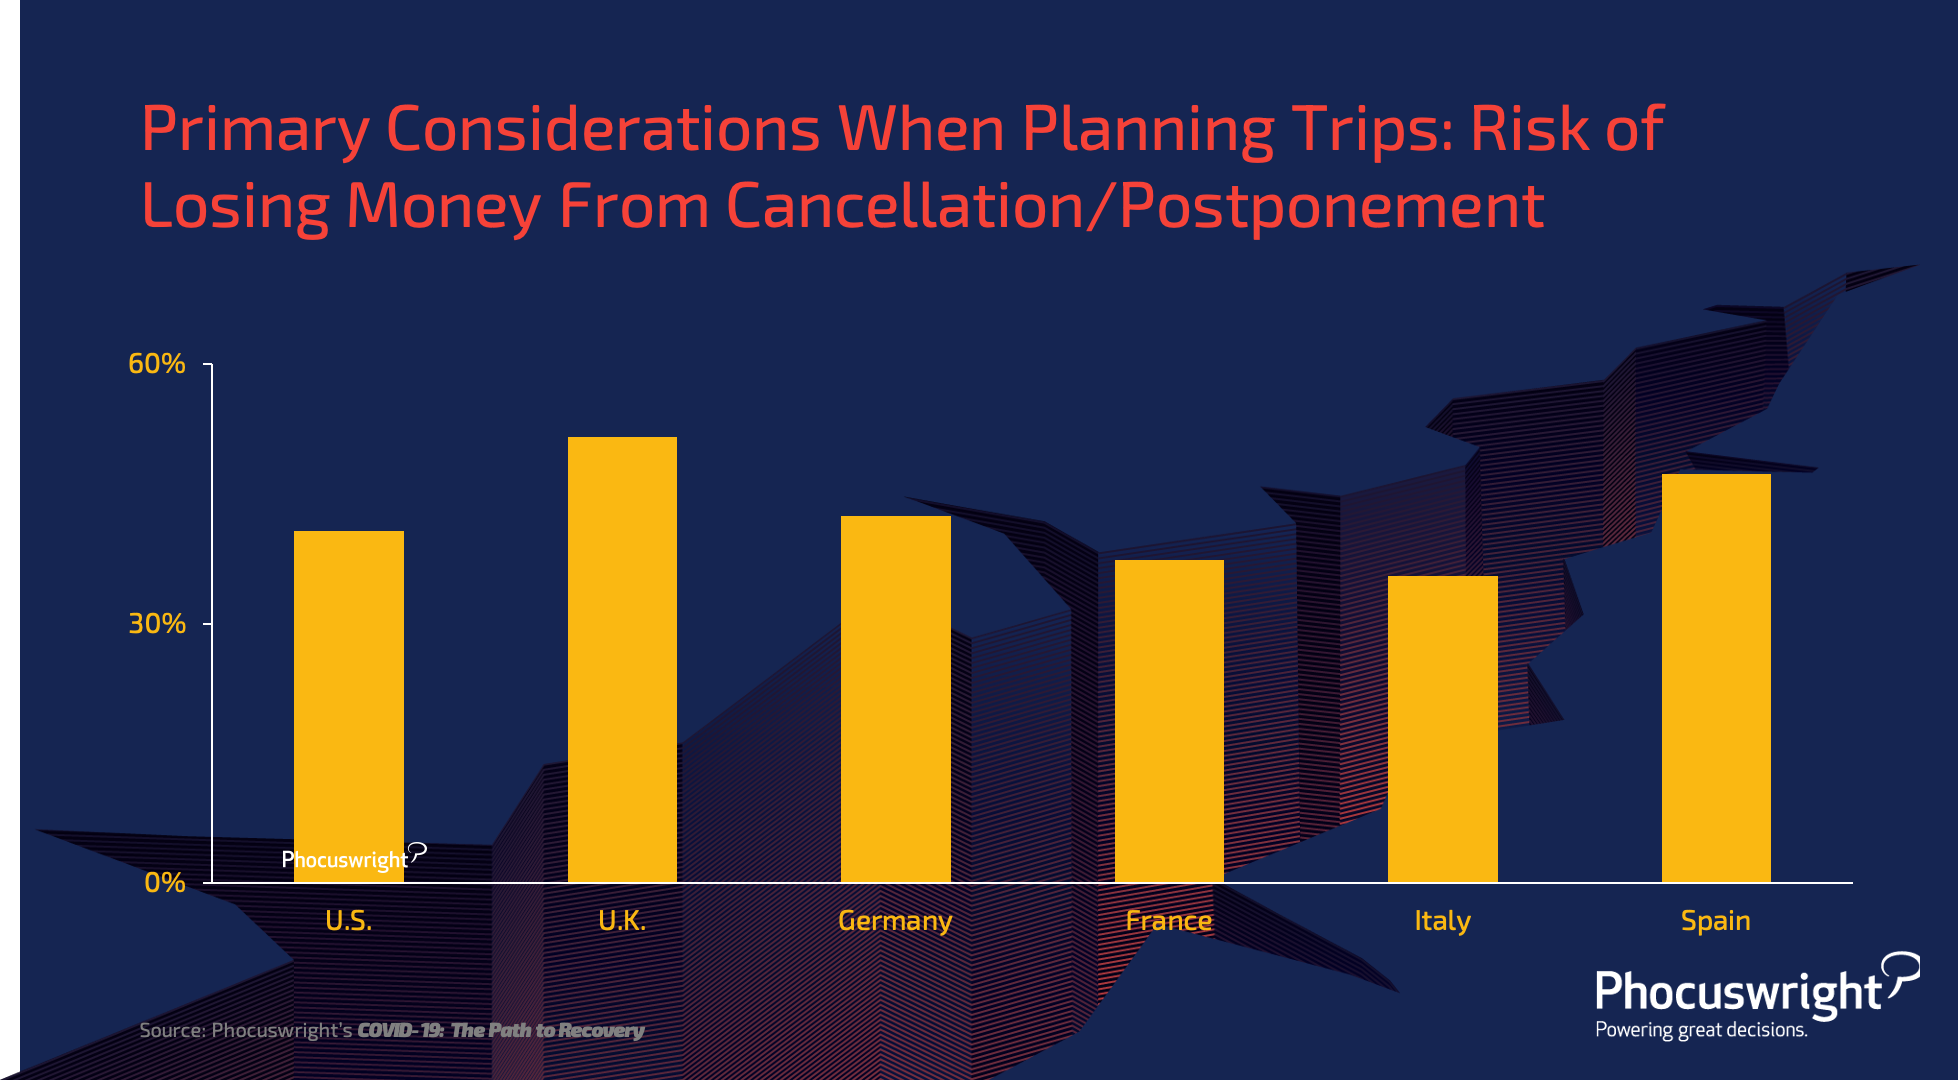 primary-considerations-when-planning-trips-phocuswright-research-chart